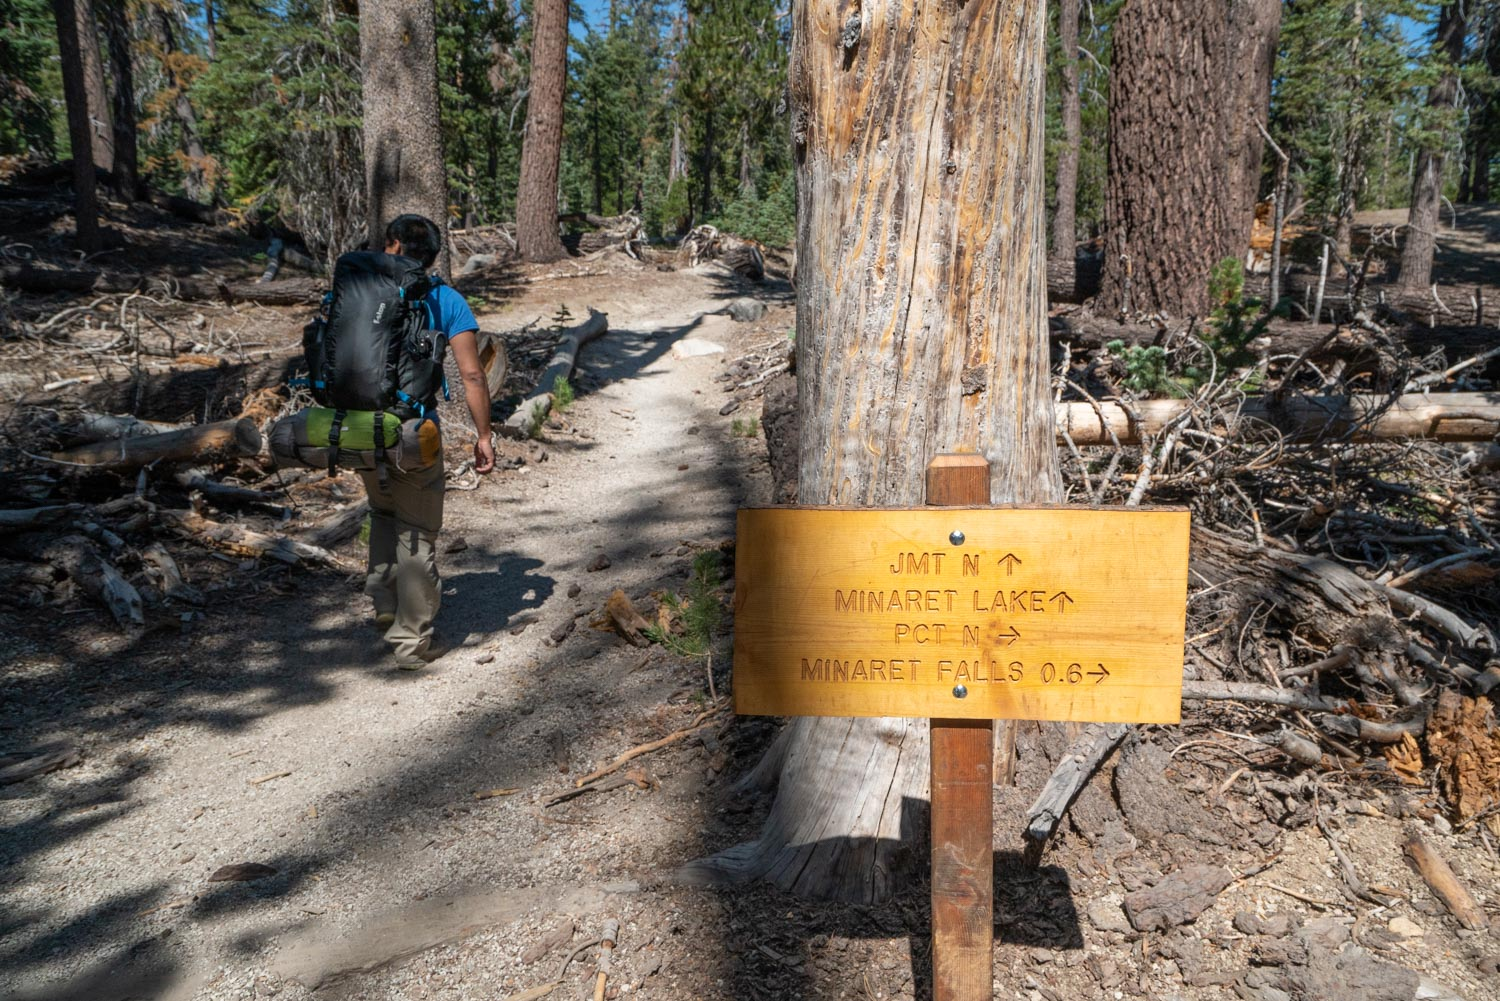 Passing the PCT junction